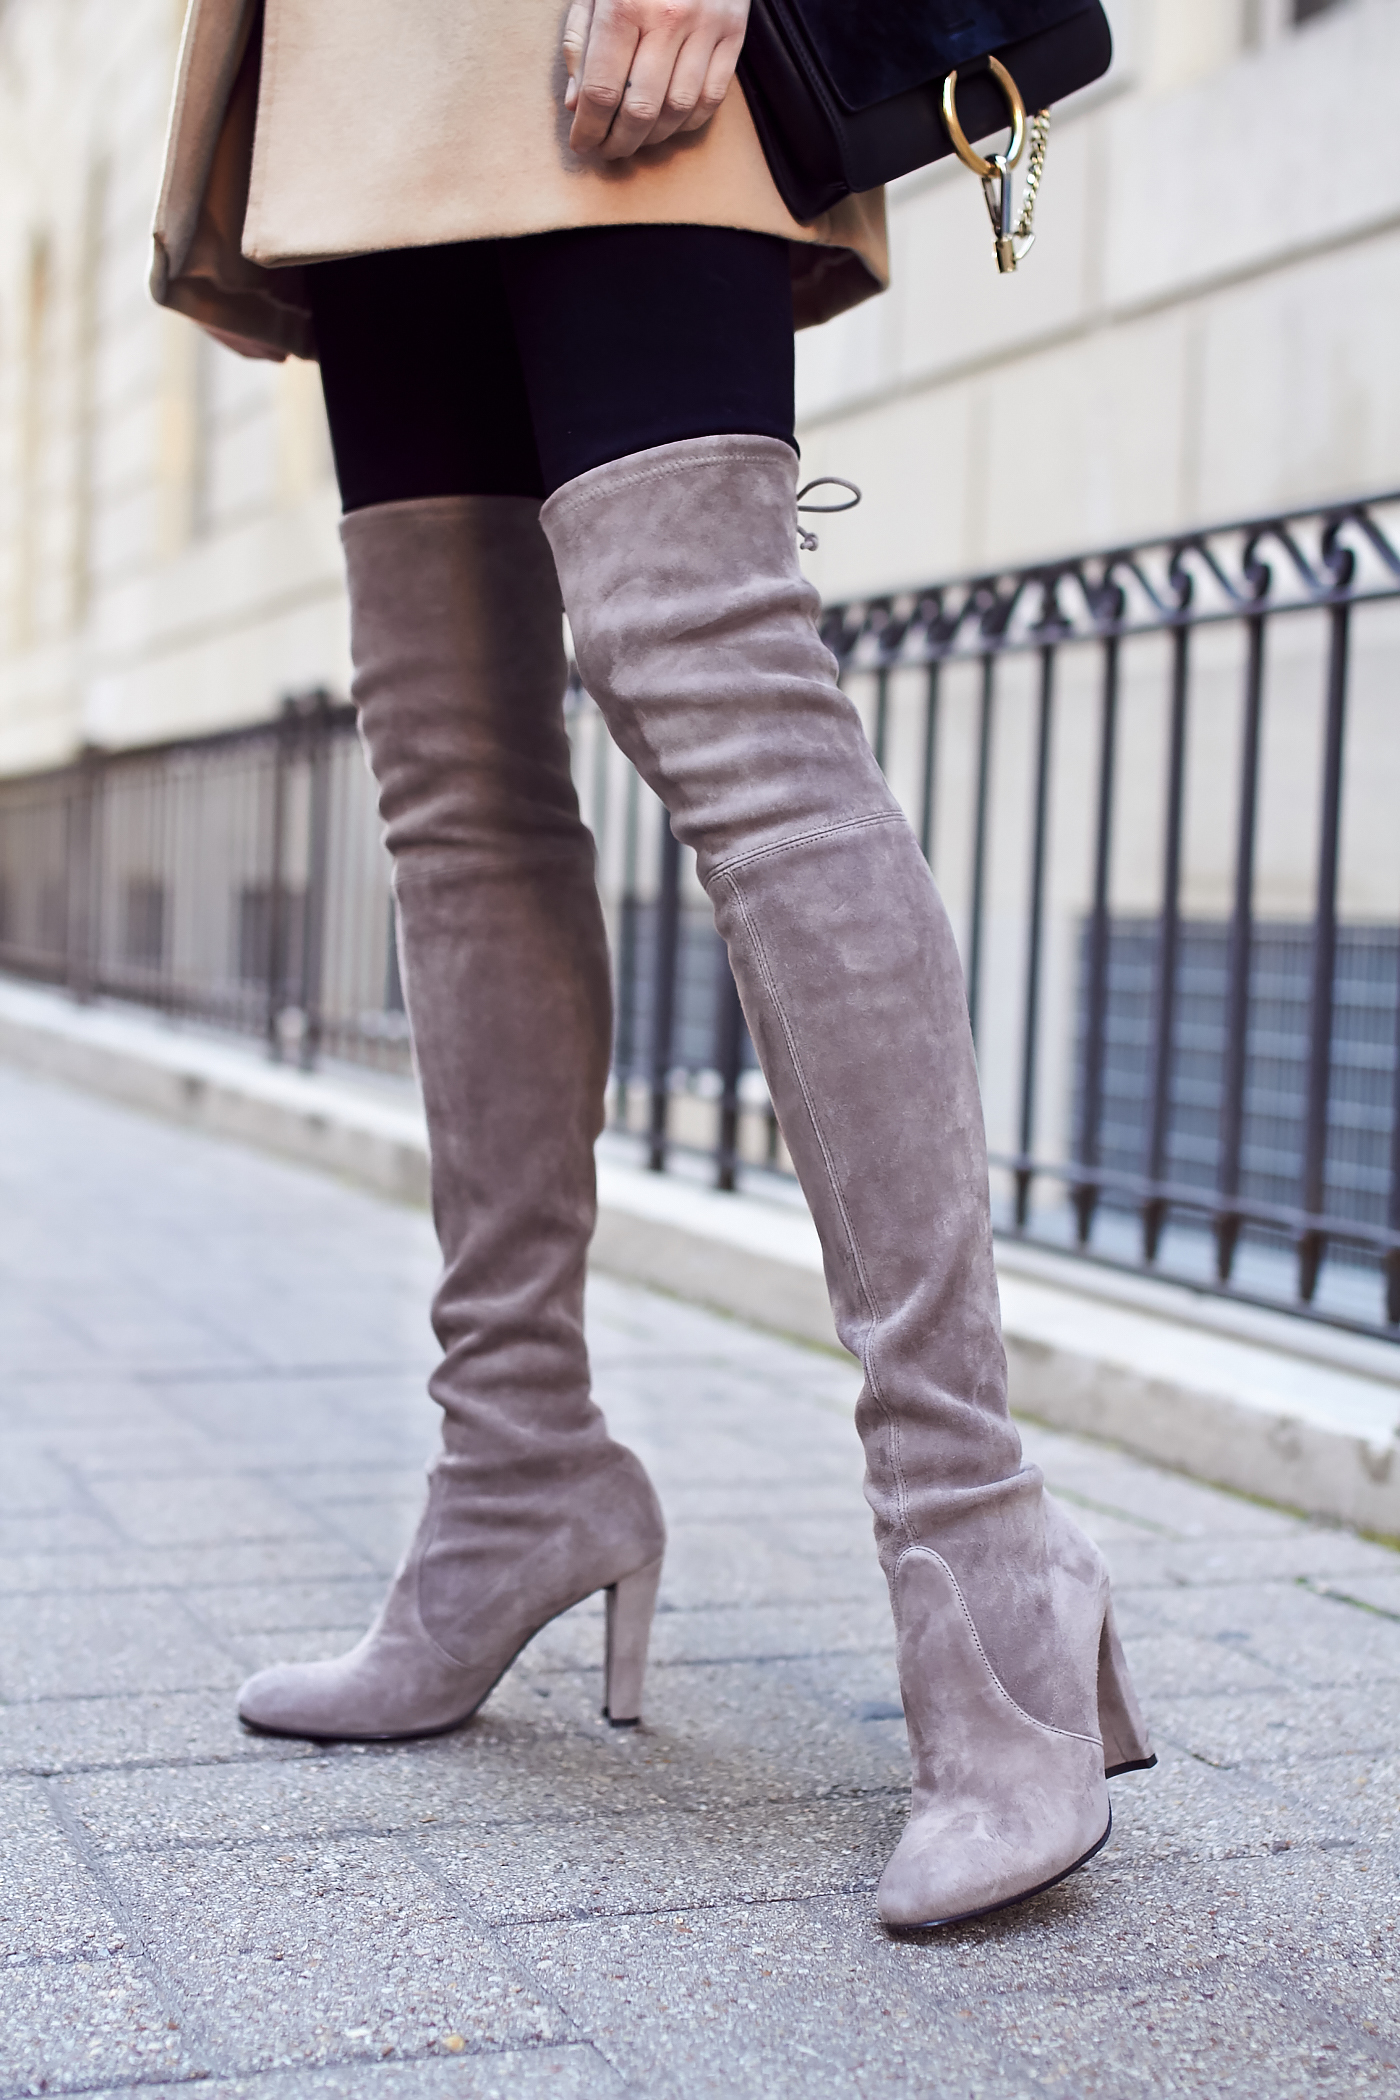 HOW TO WEAR OVER THE KNEE BOOTS | Fashion Jackson